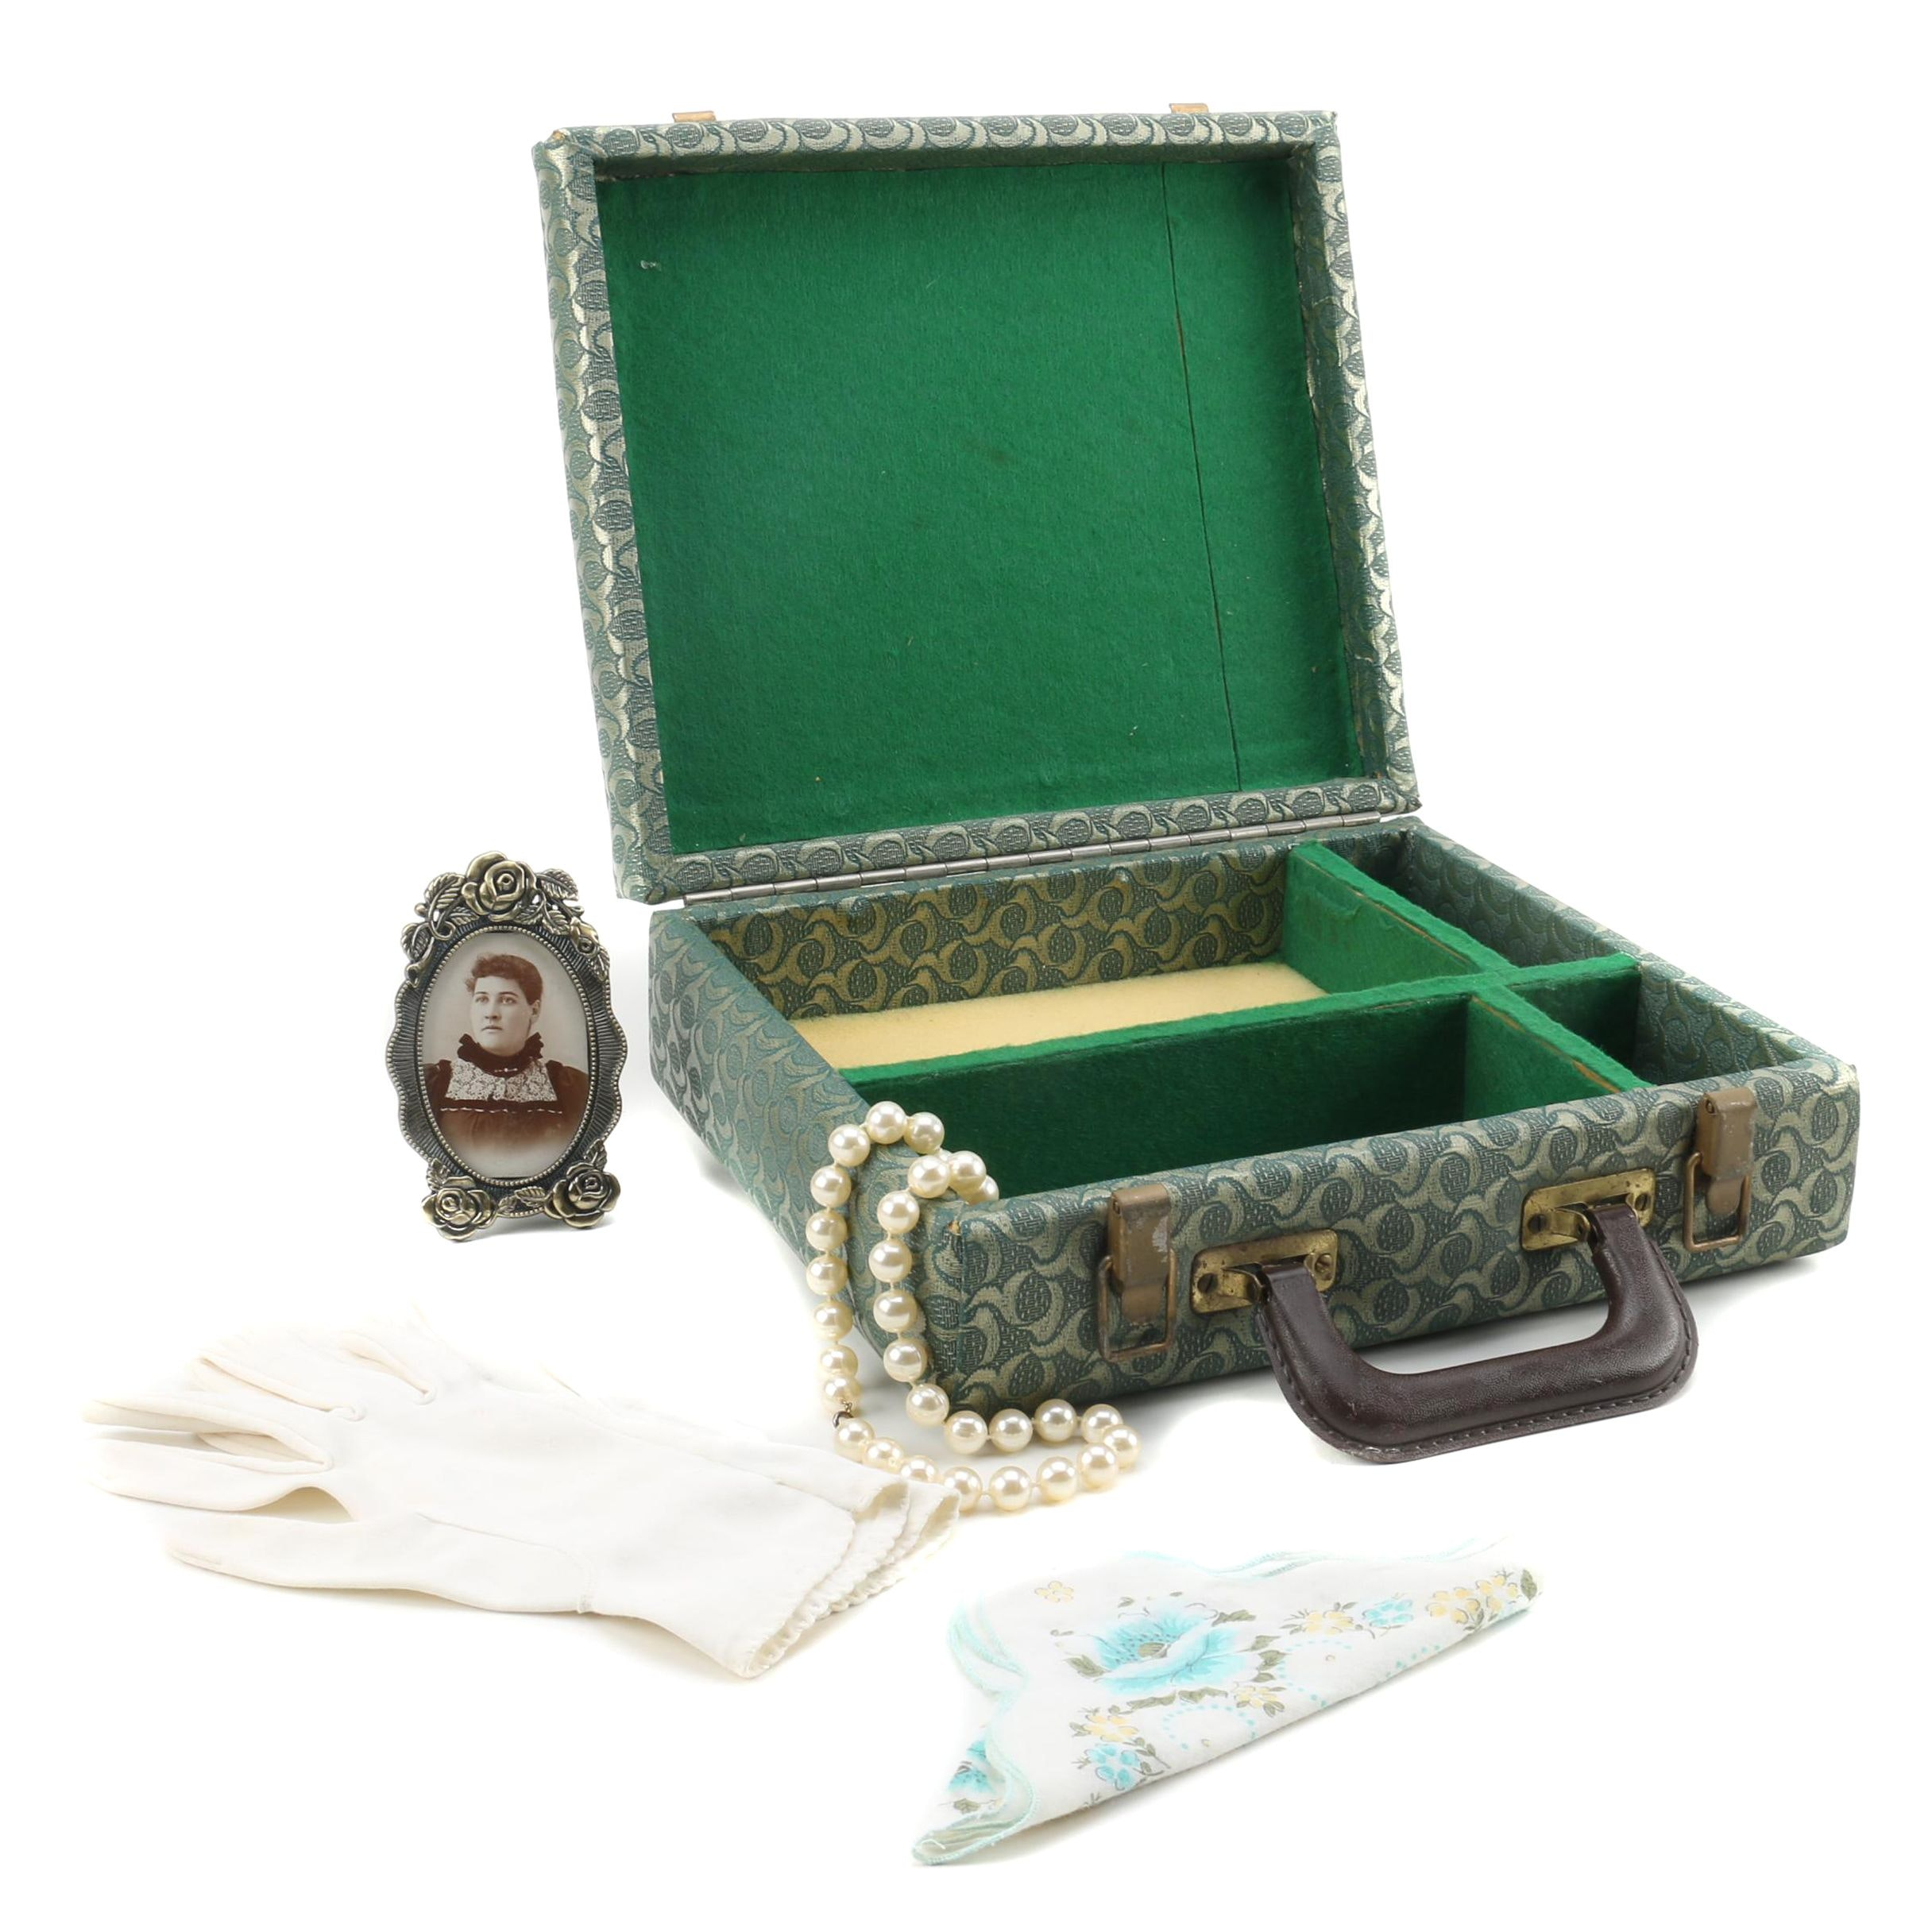 Jewelry Case with Faux Pearl Necklace, Handkerchief, Gloves and Framed Portrait